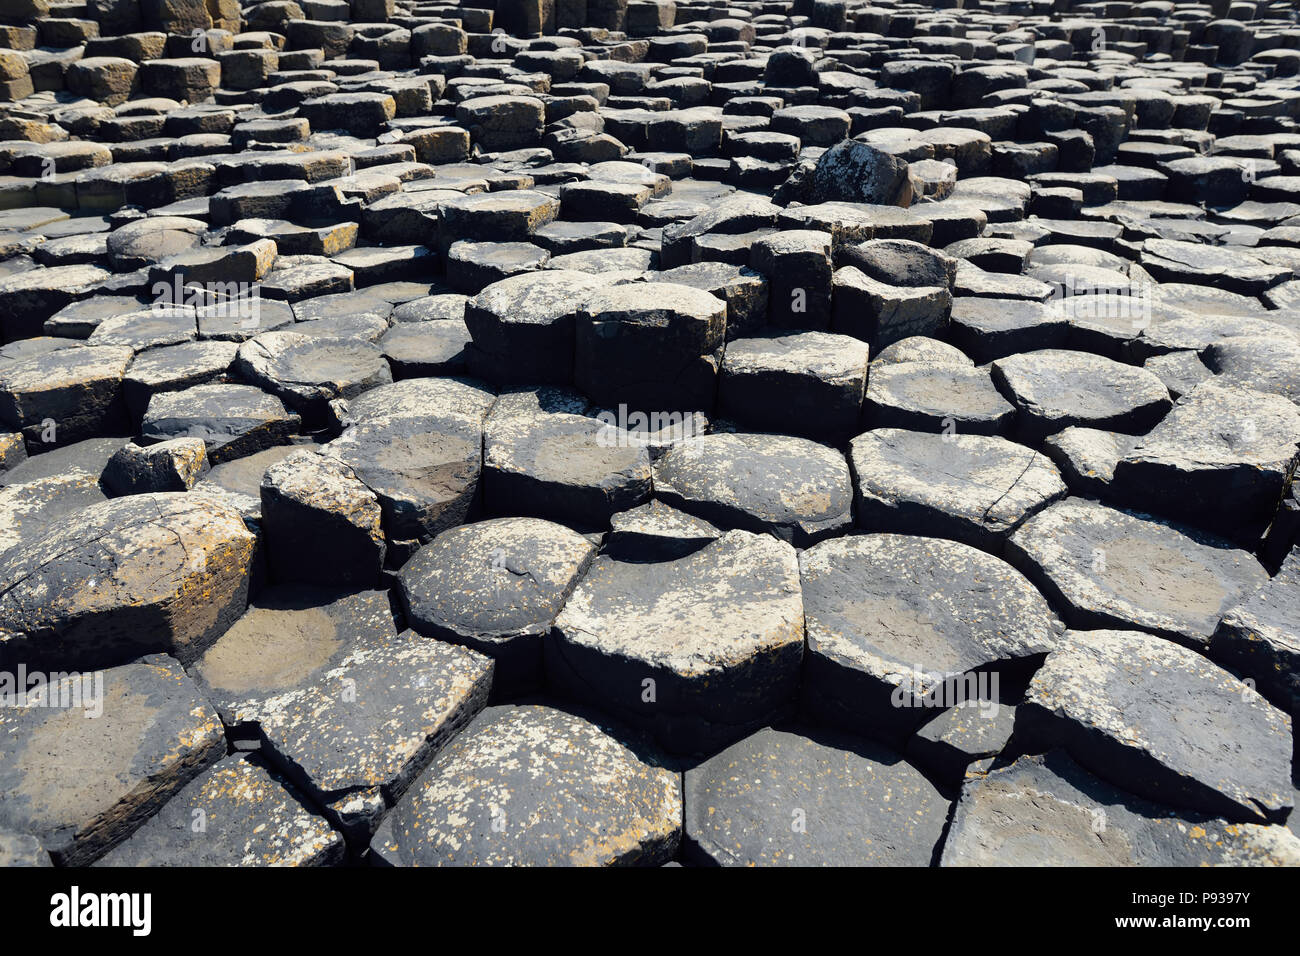 Giants Causeway, an area of hexagonal basalt stones, created by ancient volcanic fissure eruption, County Antrim, Northern Ireland. Famous tourist att - Stock Image